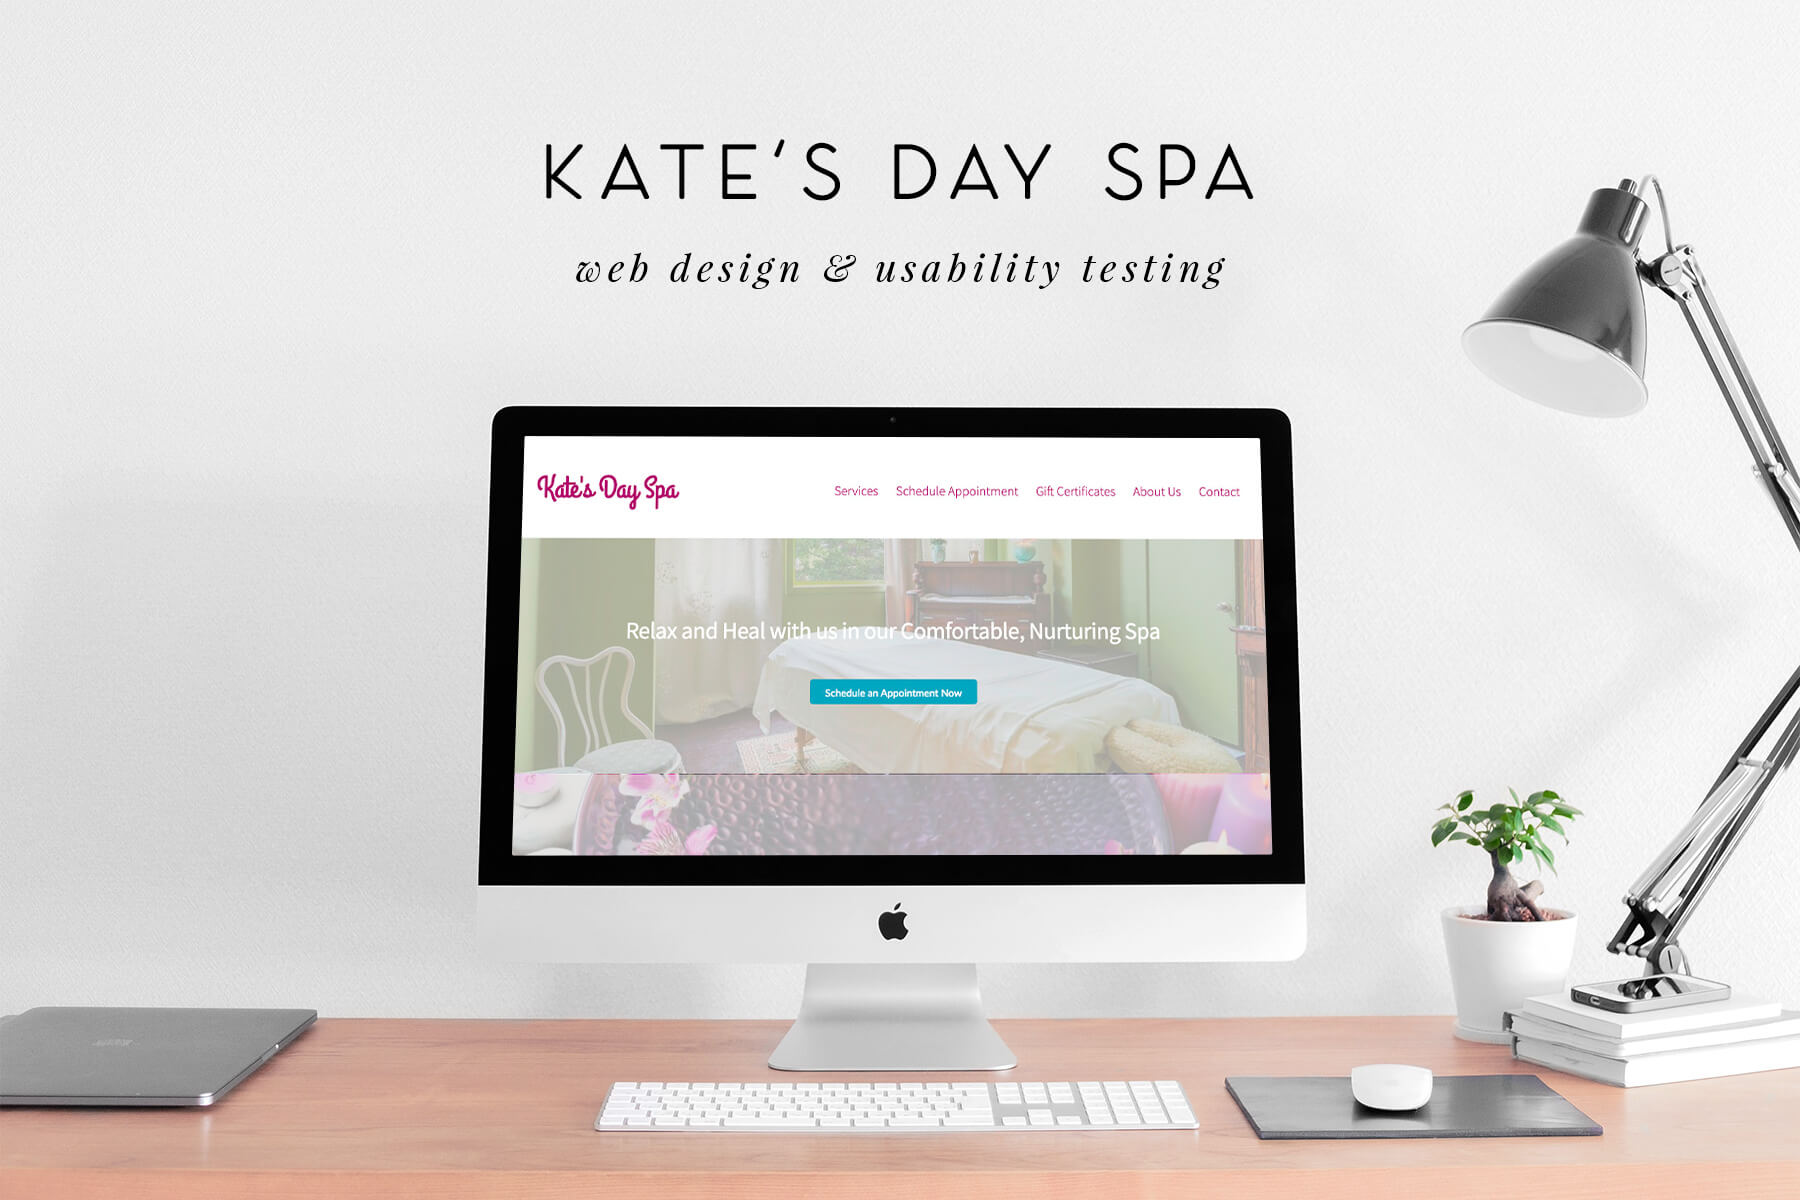 Kate's Day Spa